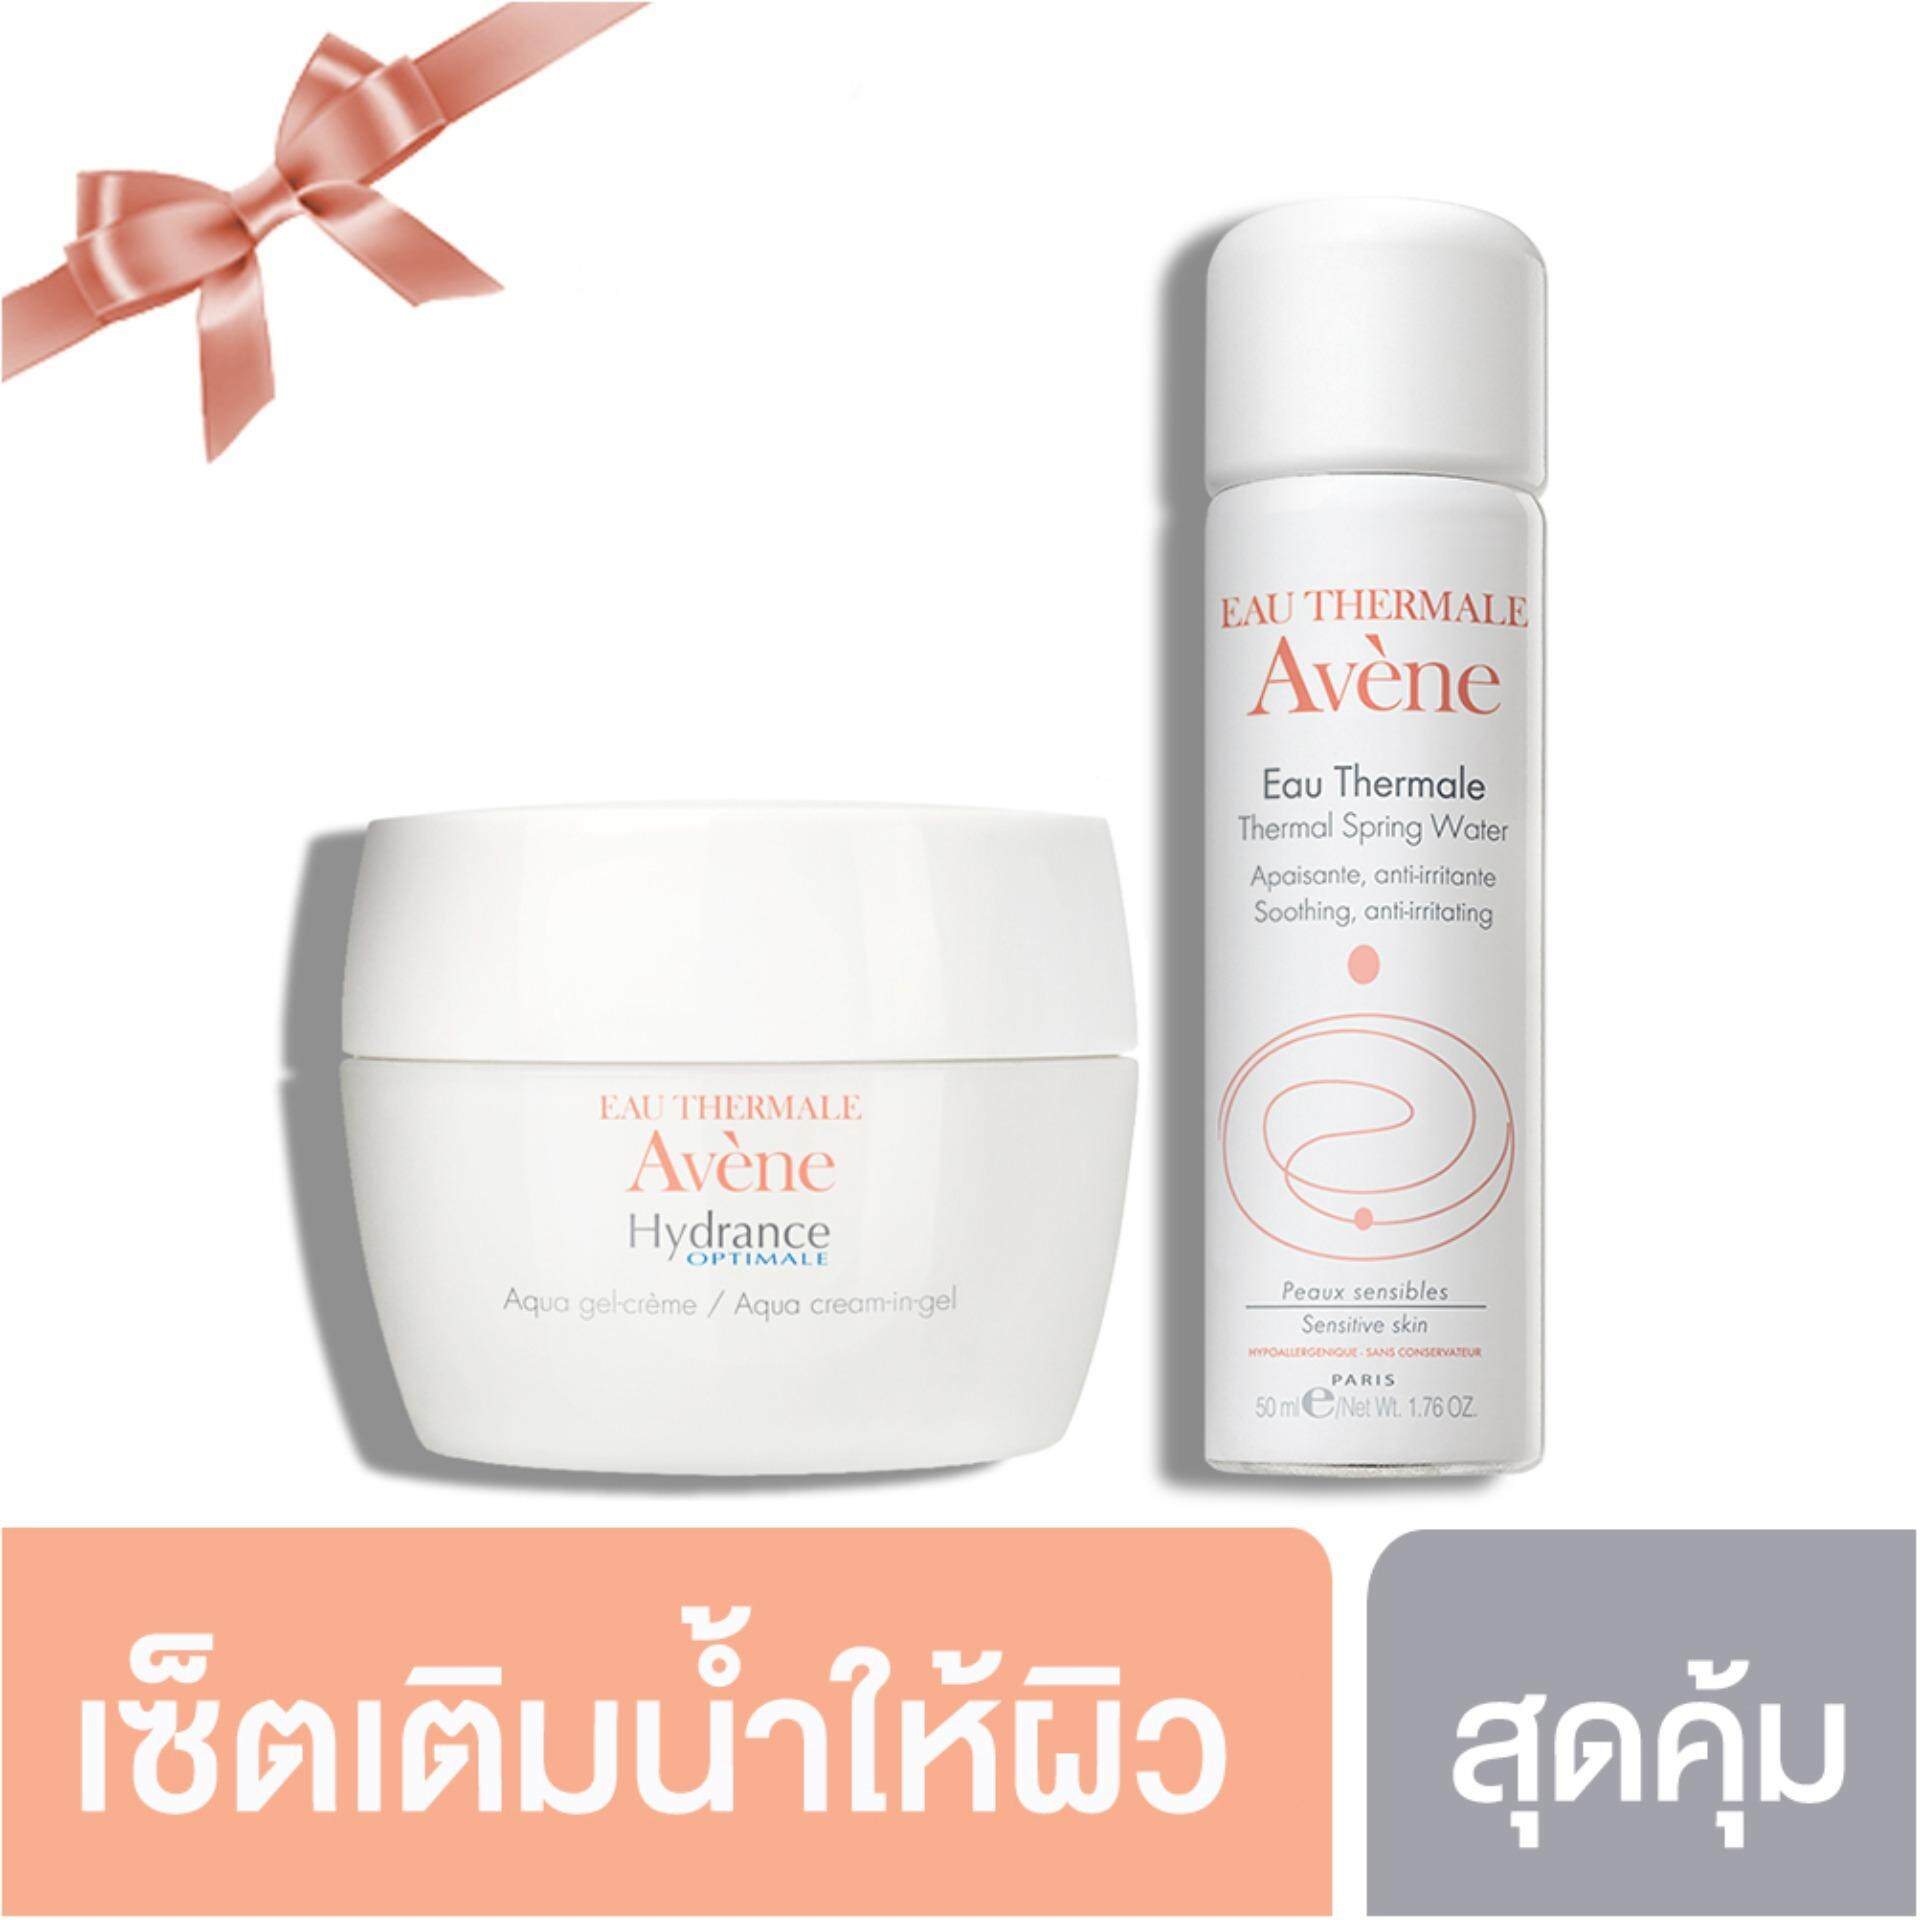 Avene Hydrance Optimale Aqua Cream In Gel Avene Thermal Spring Water 50Ml Bt กรุงเทพมหานคร